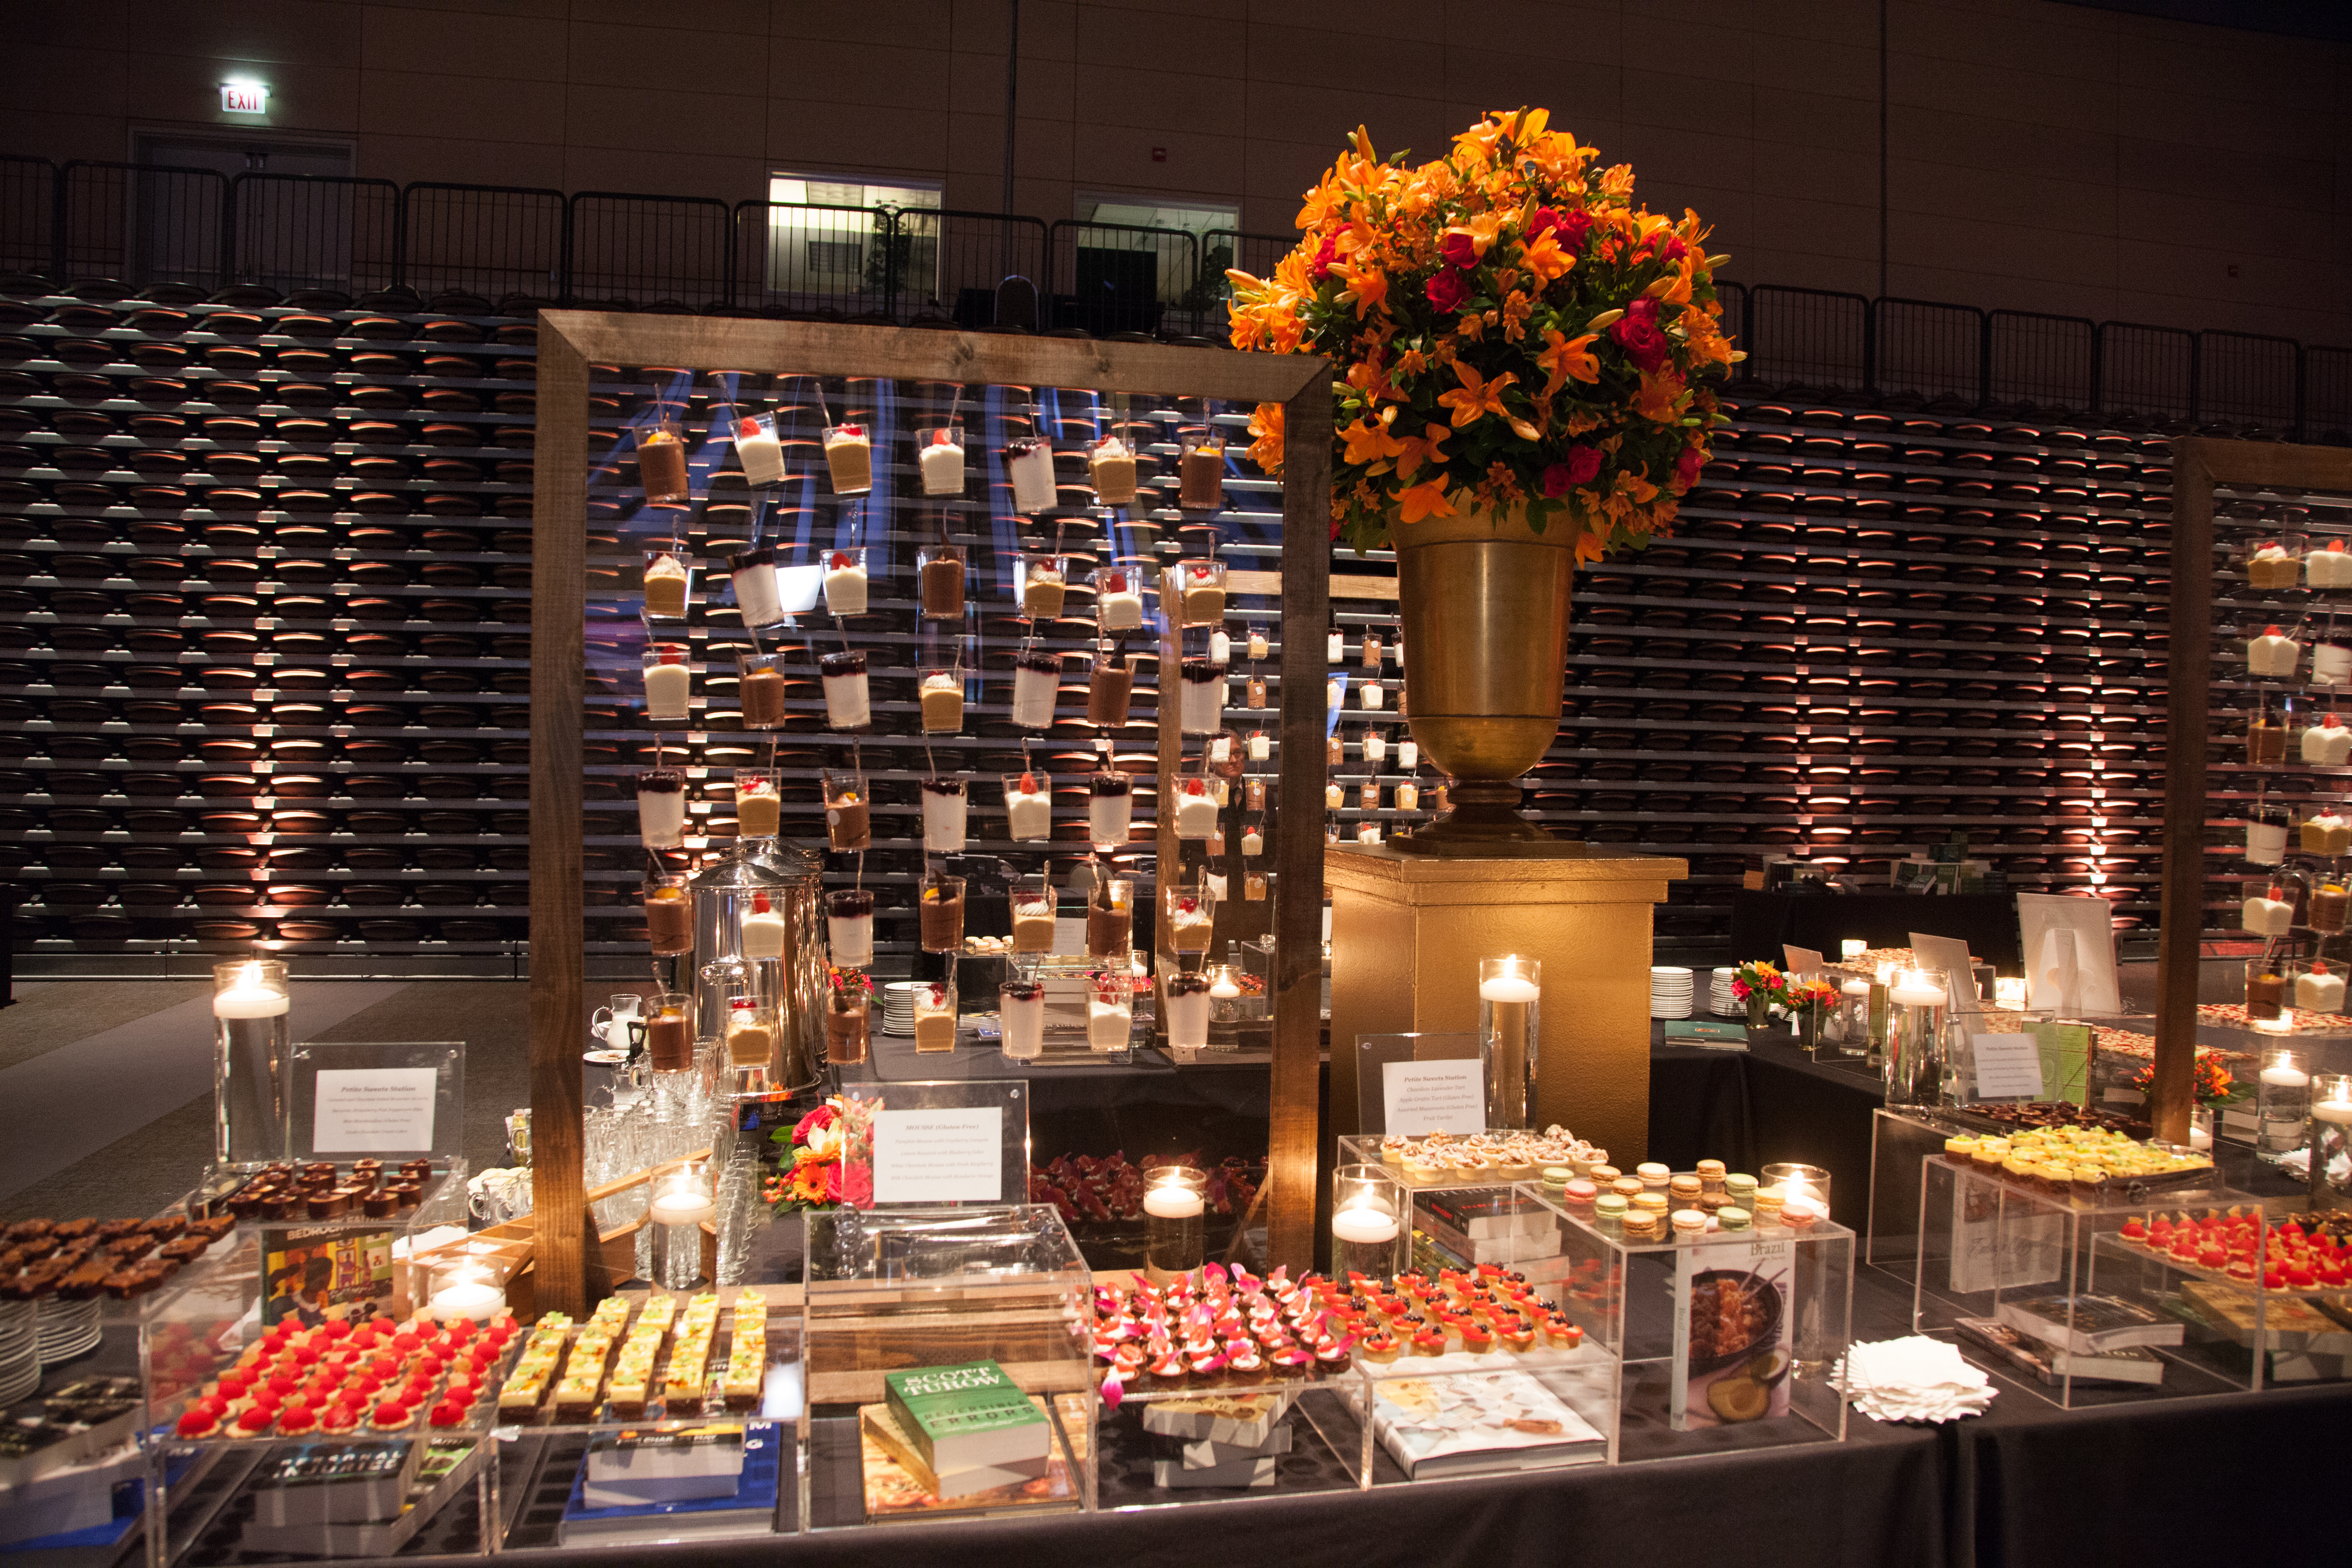 A wall of mouse, created especially for the event, at the dessert station - Photo by Johnny Knight